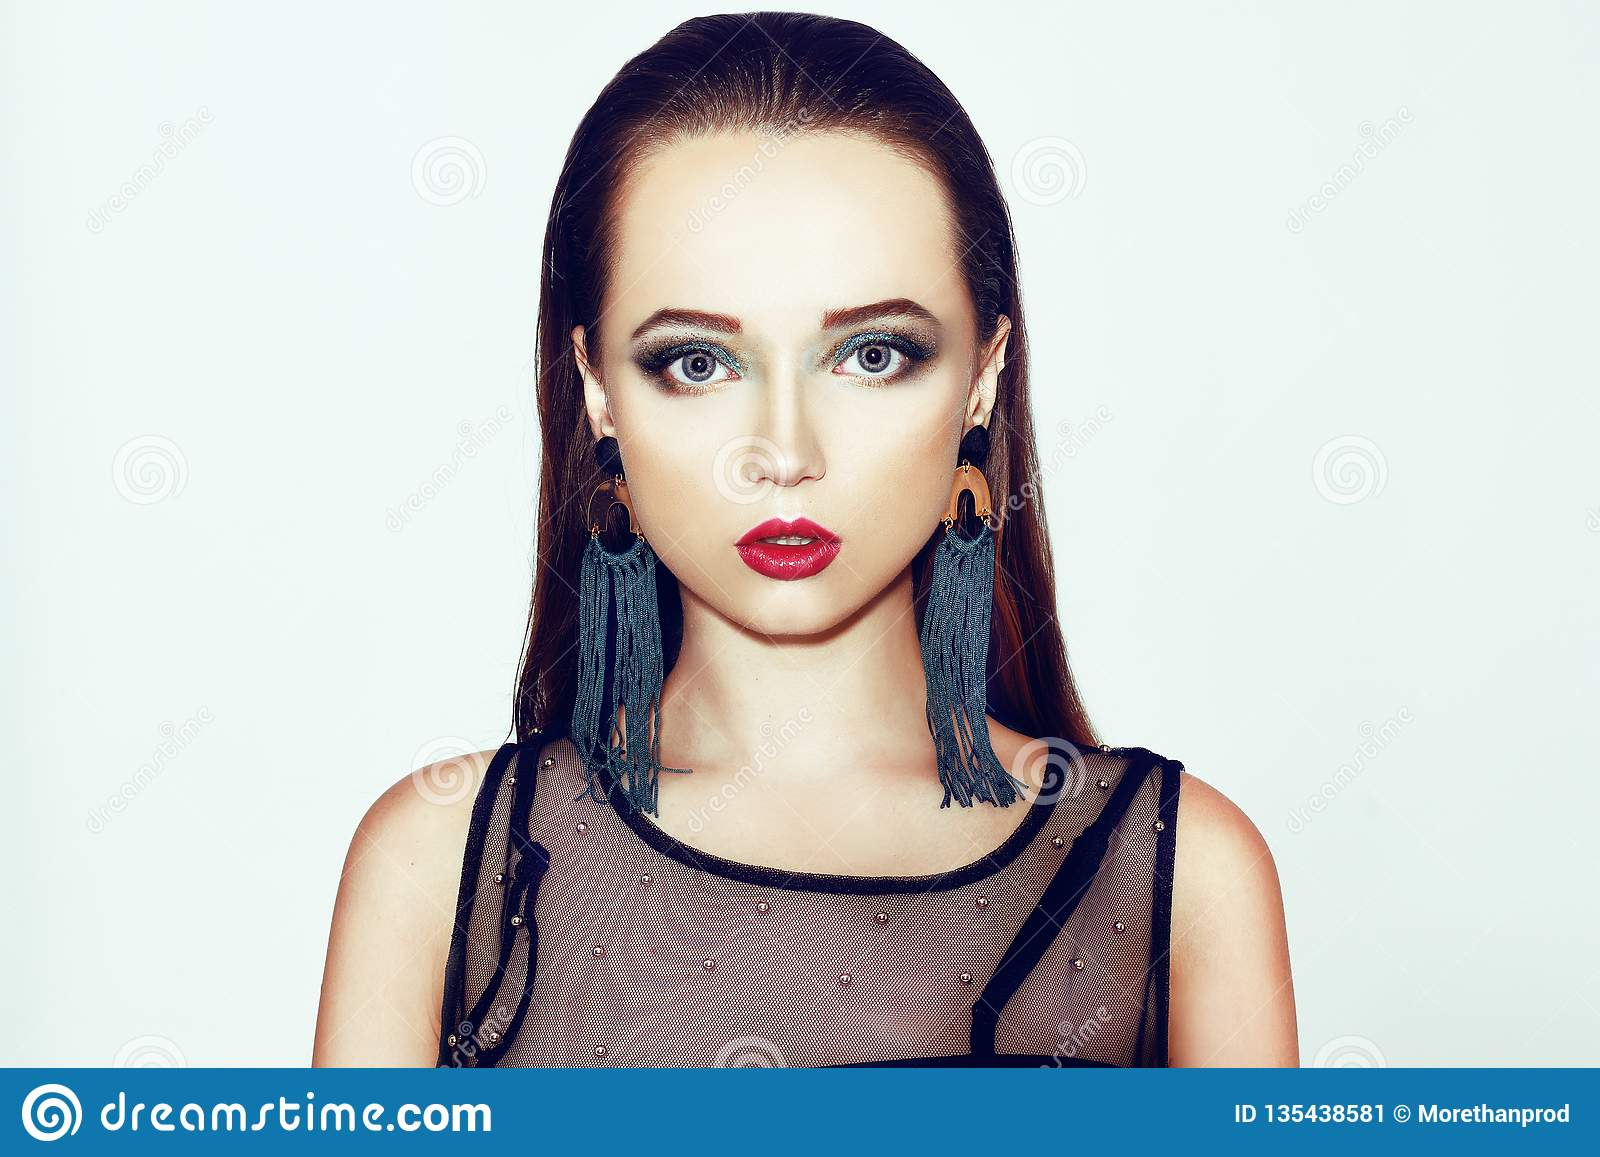 Green makeup. Beautiful girl with makeup isolated on background. Eye make-up and sensual lips. Elegant hairstyle. Brunette